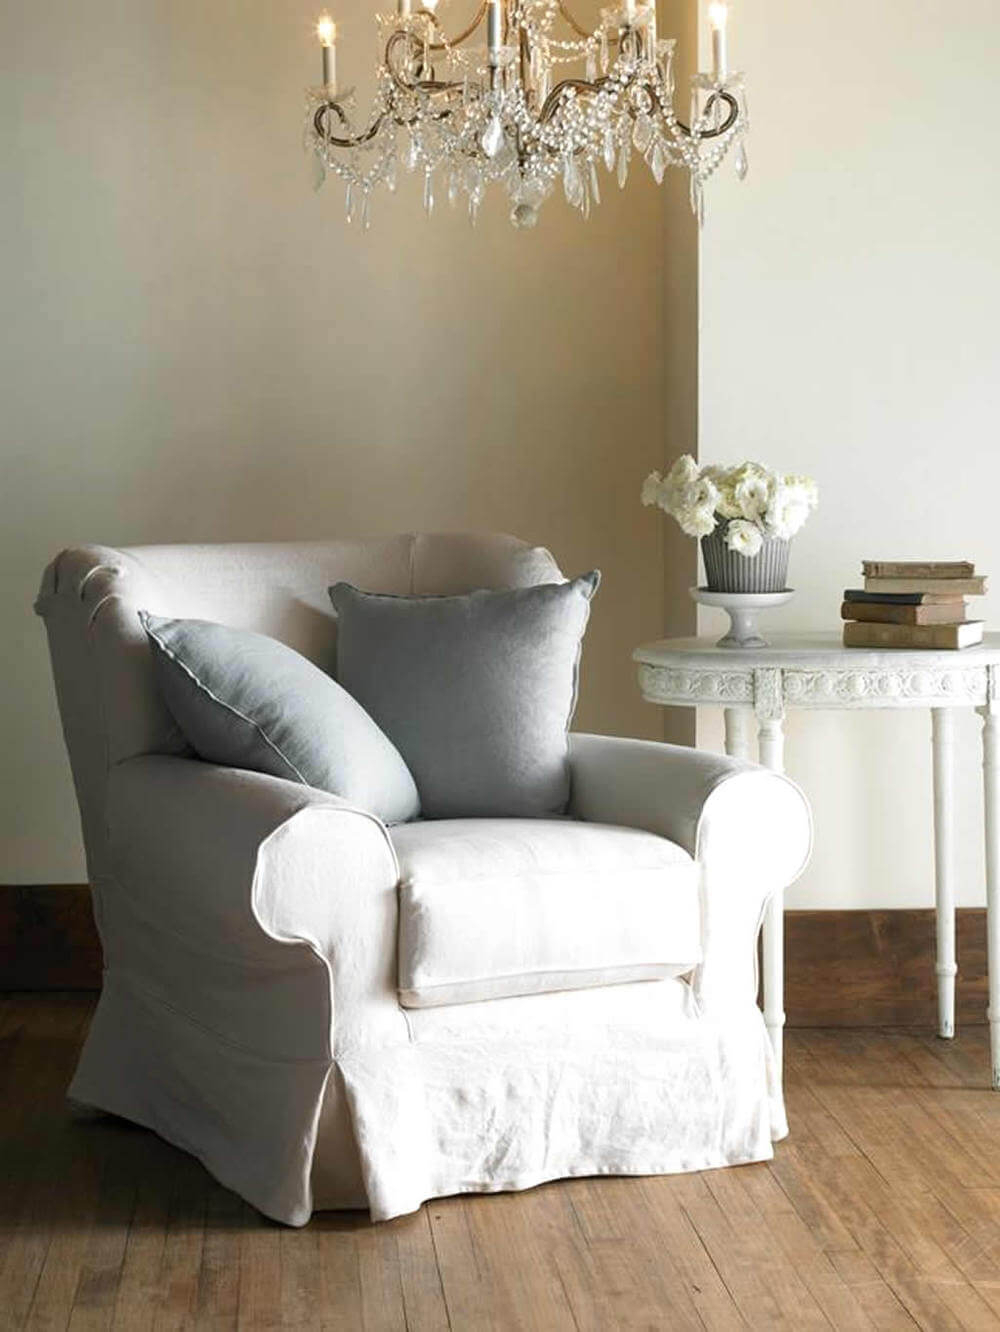 How To Welcome Shabby Chic Decor In Your Home   Interior Throughout Shabby Chic Sofas (View 12 of 15)